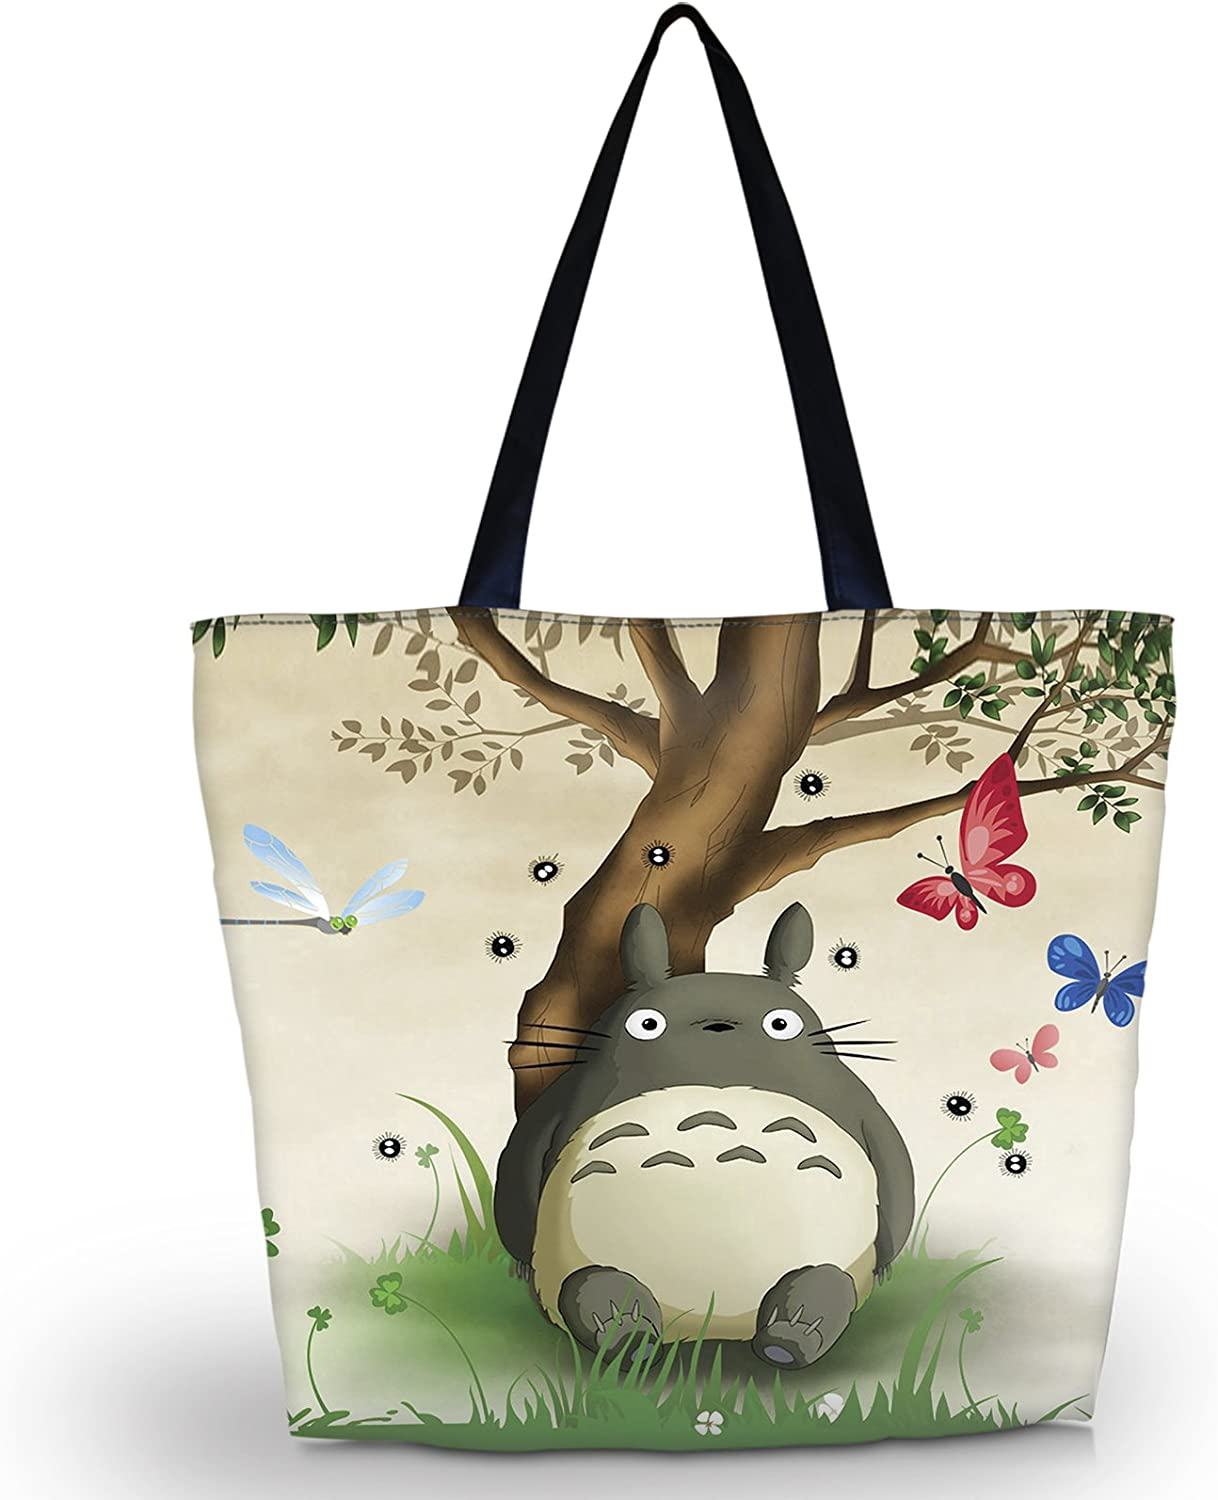 Adorable Animal Horse Womens Large Lightweight Tote Bag Shoulder Bag for Gym Hiking Picnic Travel Beach Shopping PU Leather Handbag